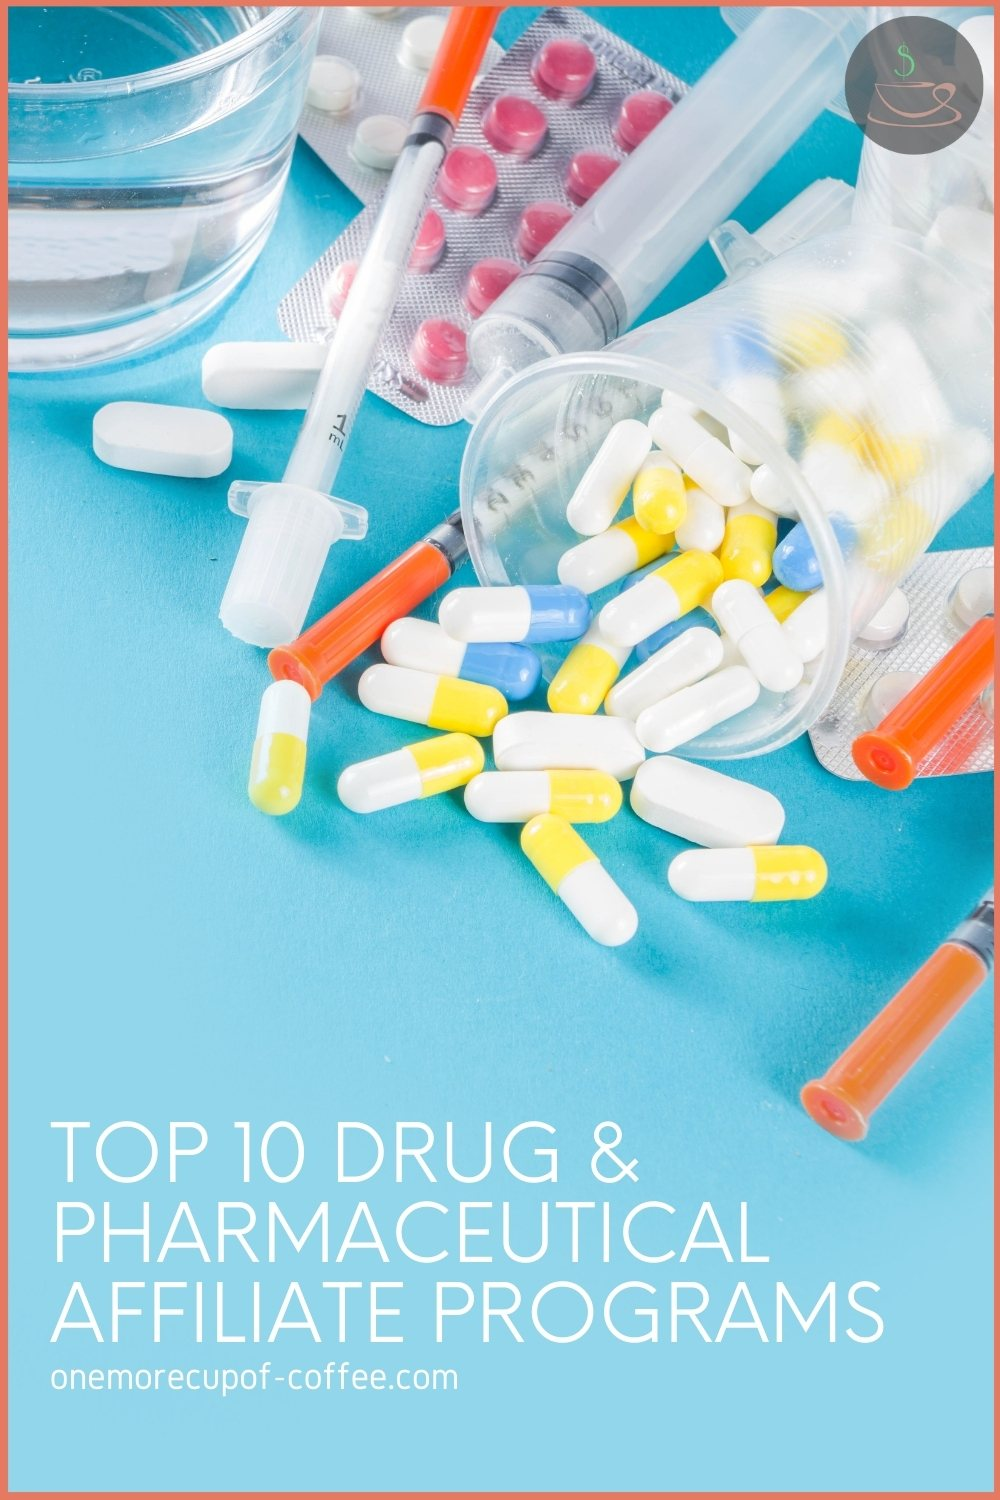 """top view image of different medications, syringes, and a glass of water; with text overlay """"Top 10 Drug & Pharmaceutical Affiliate Programs"""""""